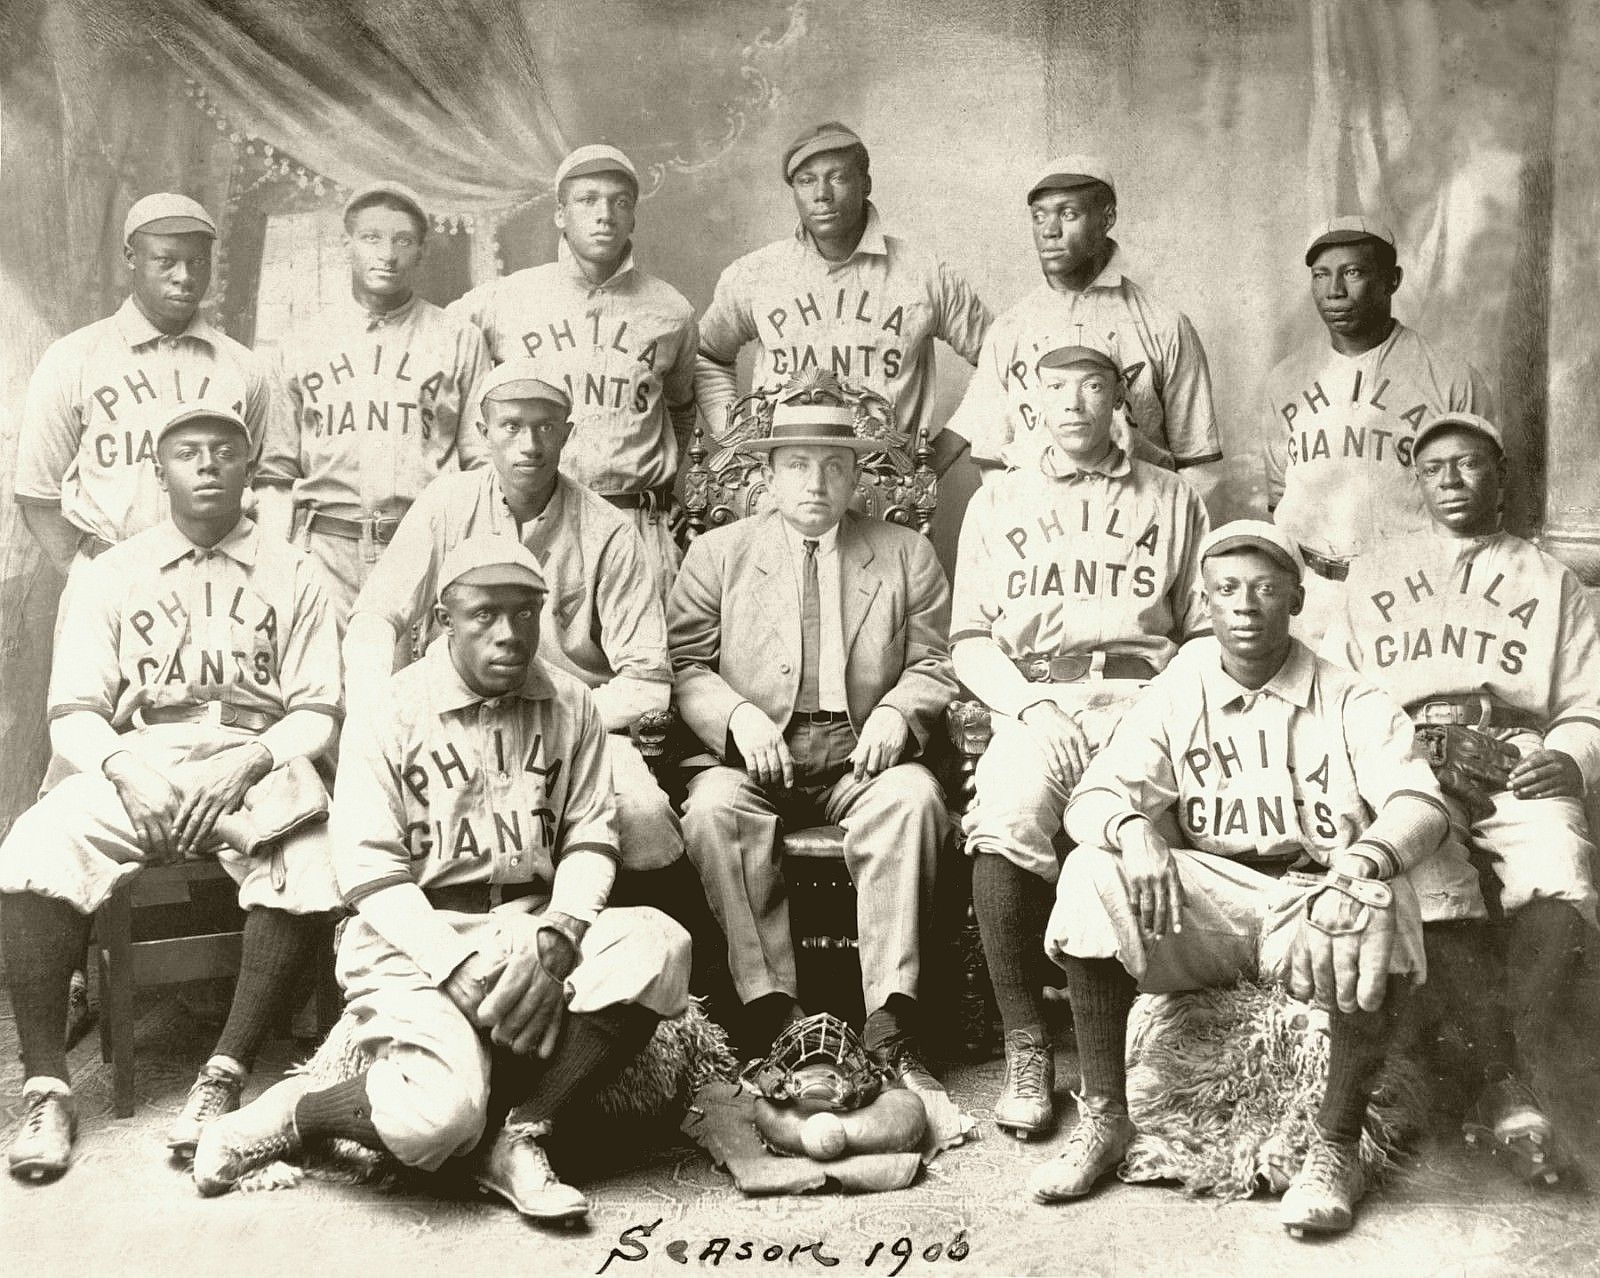 Philadelphia Giants, 1906 Negro League Champions